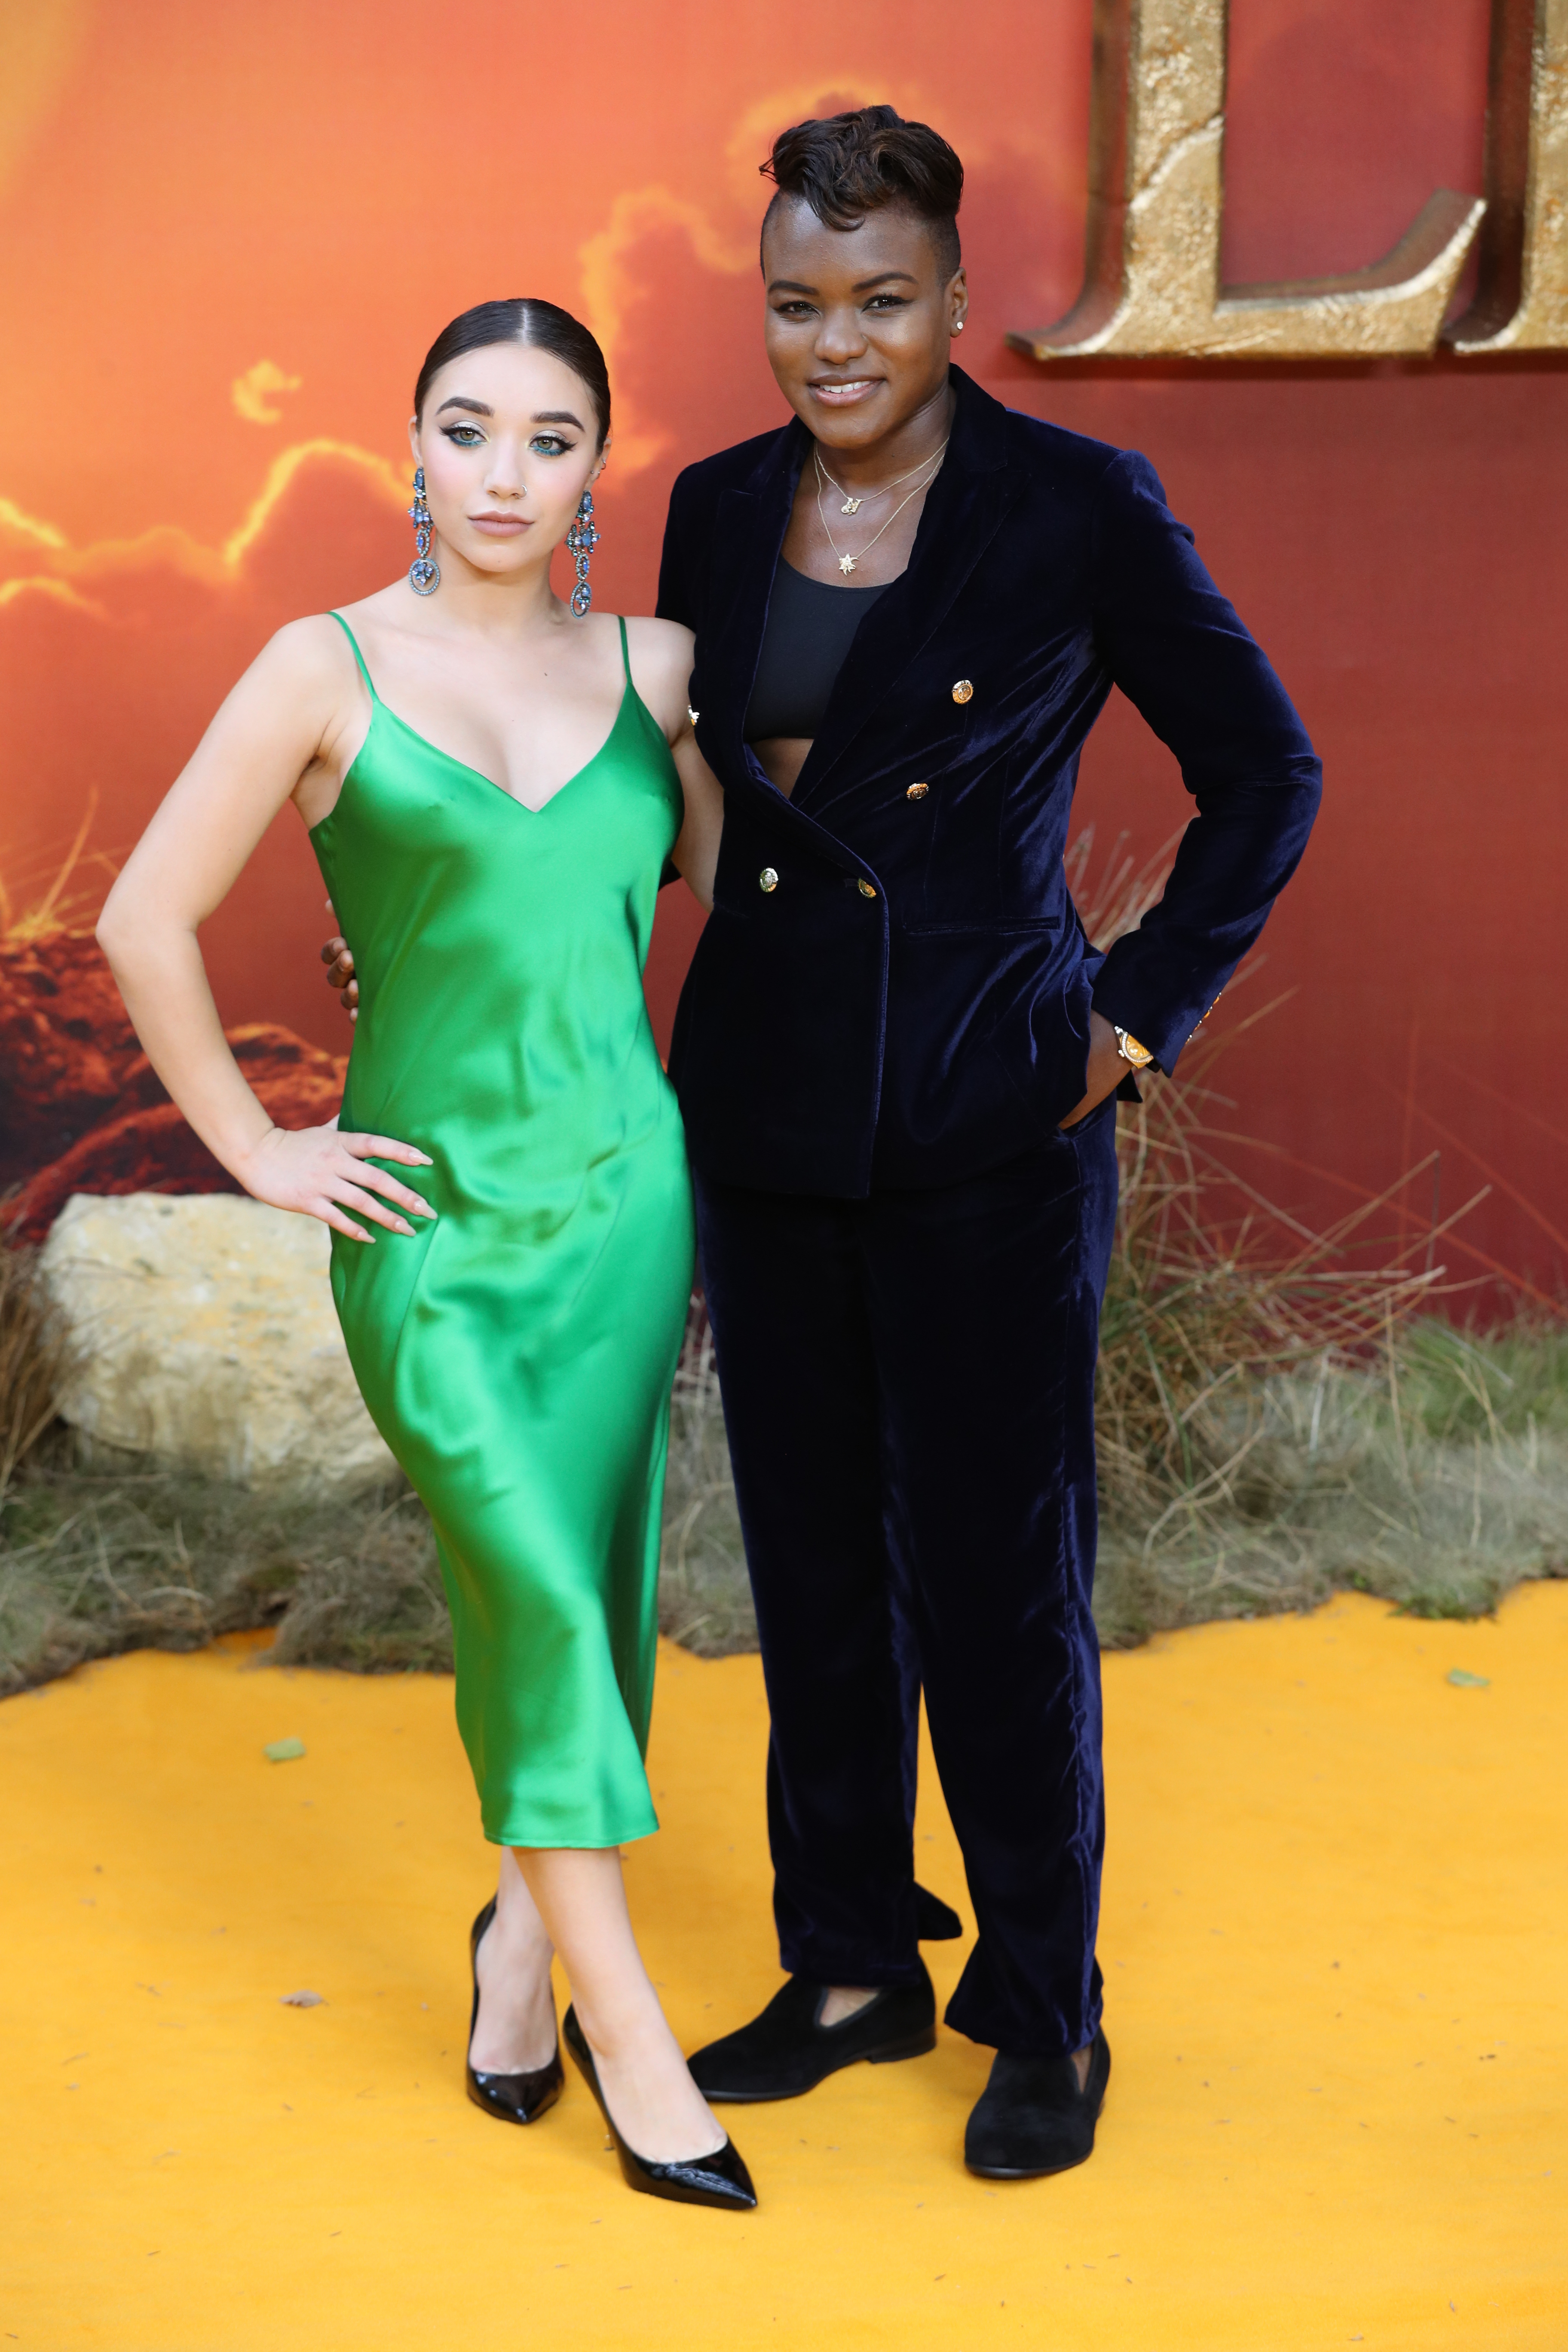 Nicola Adams and partner attend the European Premiere of Disney's The Lion King at the Odeon Leicester Square, London.